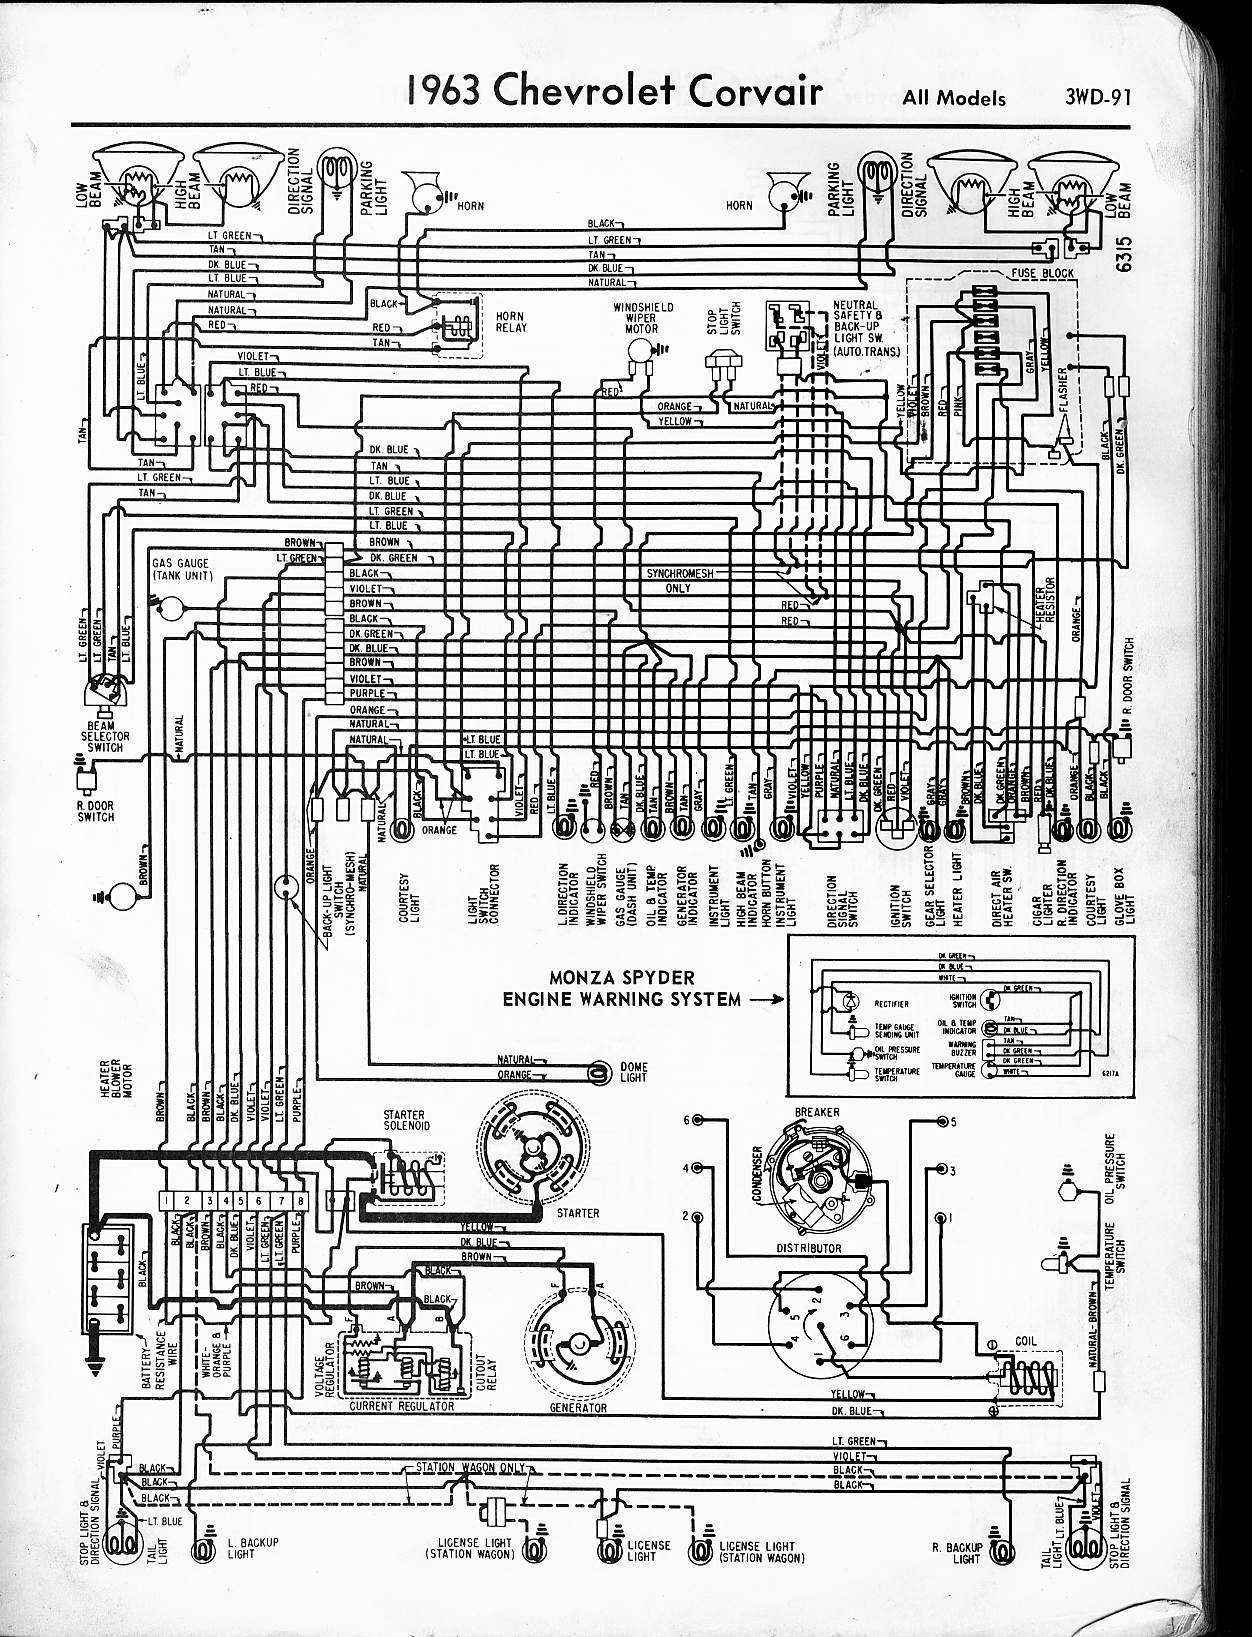 WRG-6242] 1979 Corvette Starter Wiring Diagram on 1979 corvette repair manual, 1979 corvette horn diagram, 1979 corvette antenna, 1979 corvette air conditioning diagram, 1979 corvette power steering, 1979 corvette ac diagram, 1979 corvette ac wiring, 1970 corvette vacuum diagram, 1979 corvette headlight wiring, 1979 corvette exhaust diagram, 1979 corvette tachometer wiring, 1979 corvette fuse, 1979 corvette brake, 1979 corvette door panel removal, 1979 corvette schematic, 1979 corvette regulator, 1979 corvette owner's manual, 1979 corvette ignition, 1979 corvette engine swap, 1979 corvette neutral safety switch,